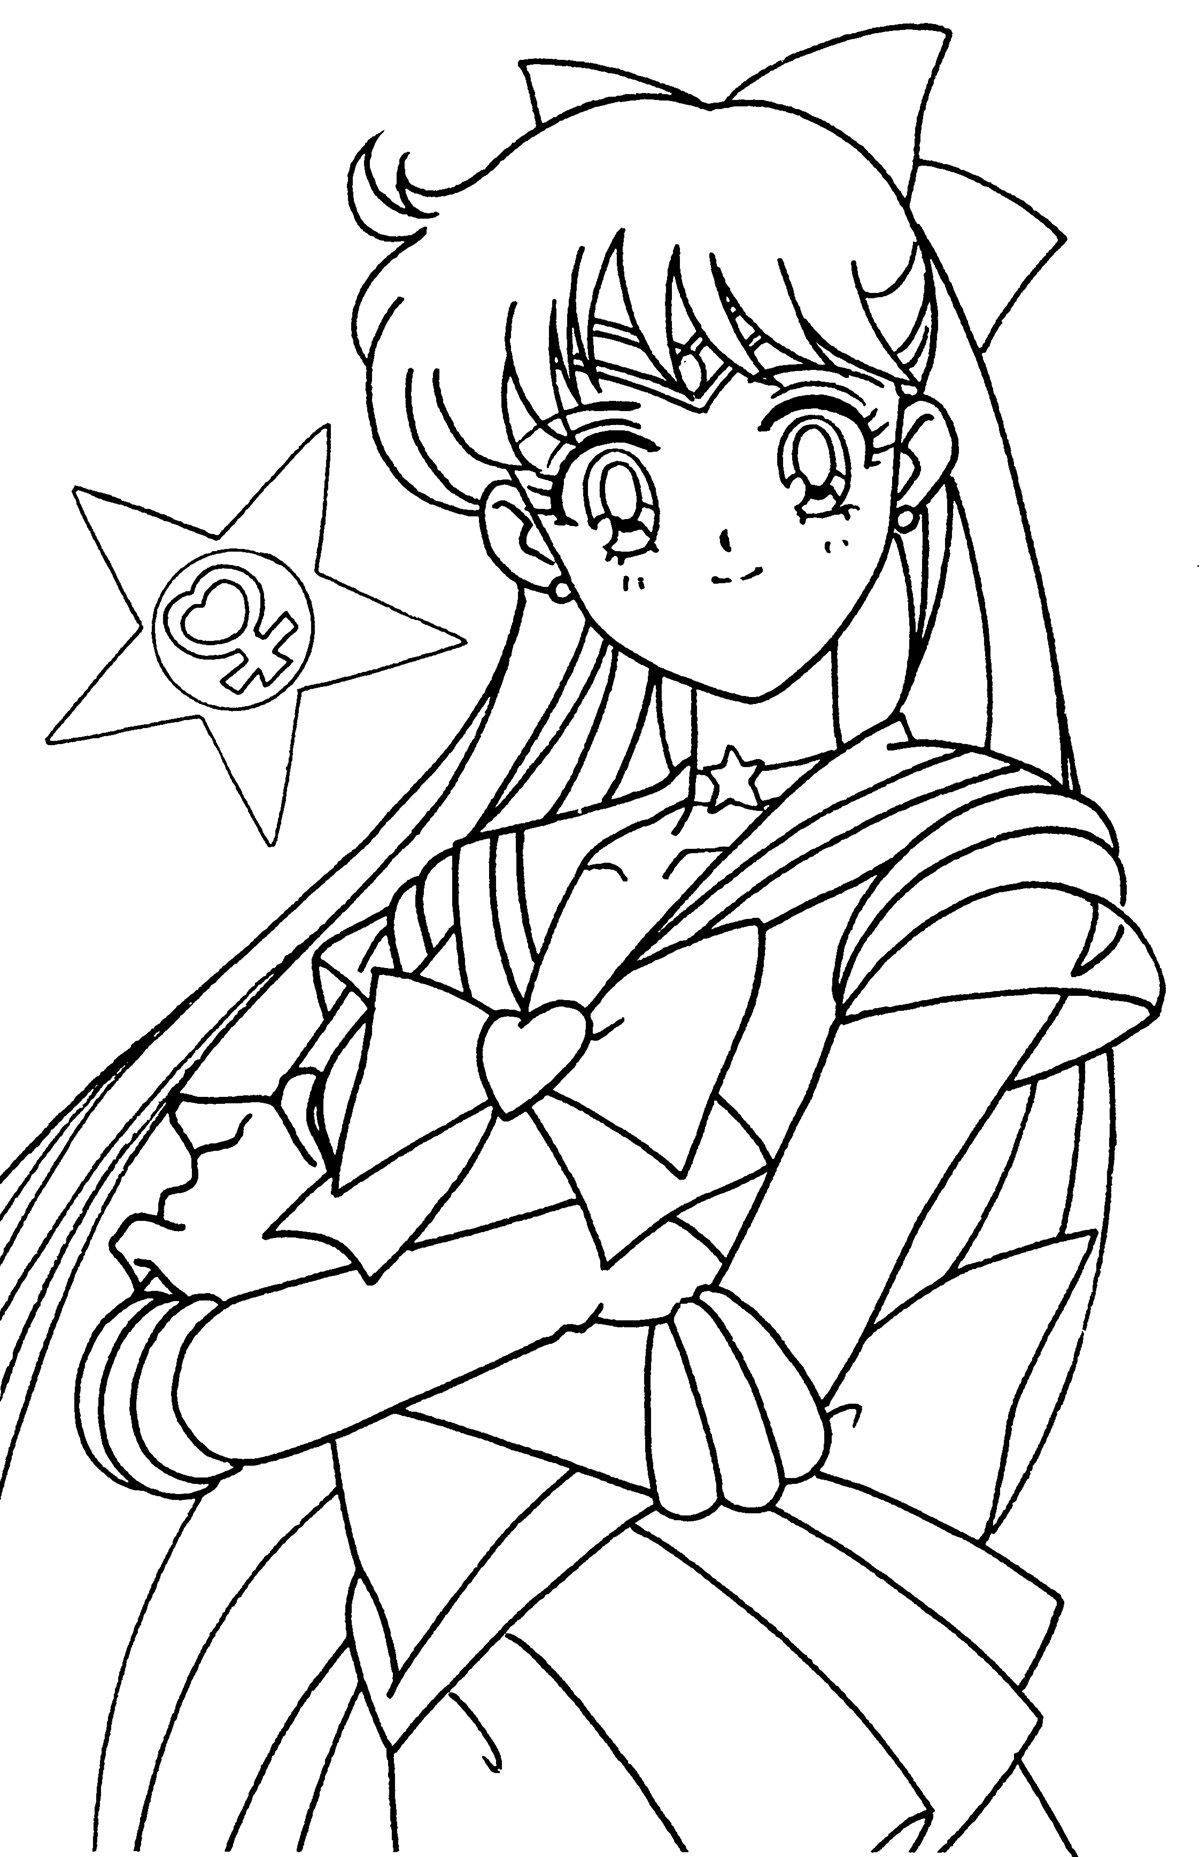 venus012.jpg (1200×1857) | Sailor moon coloring pages ...